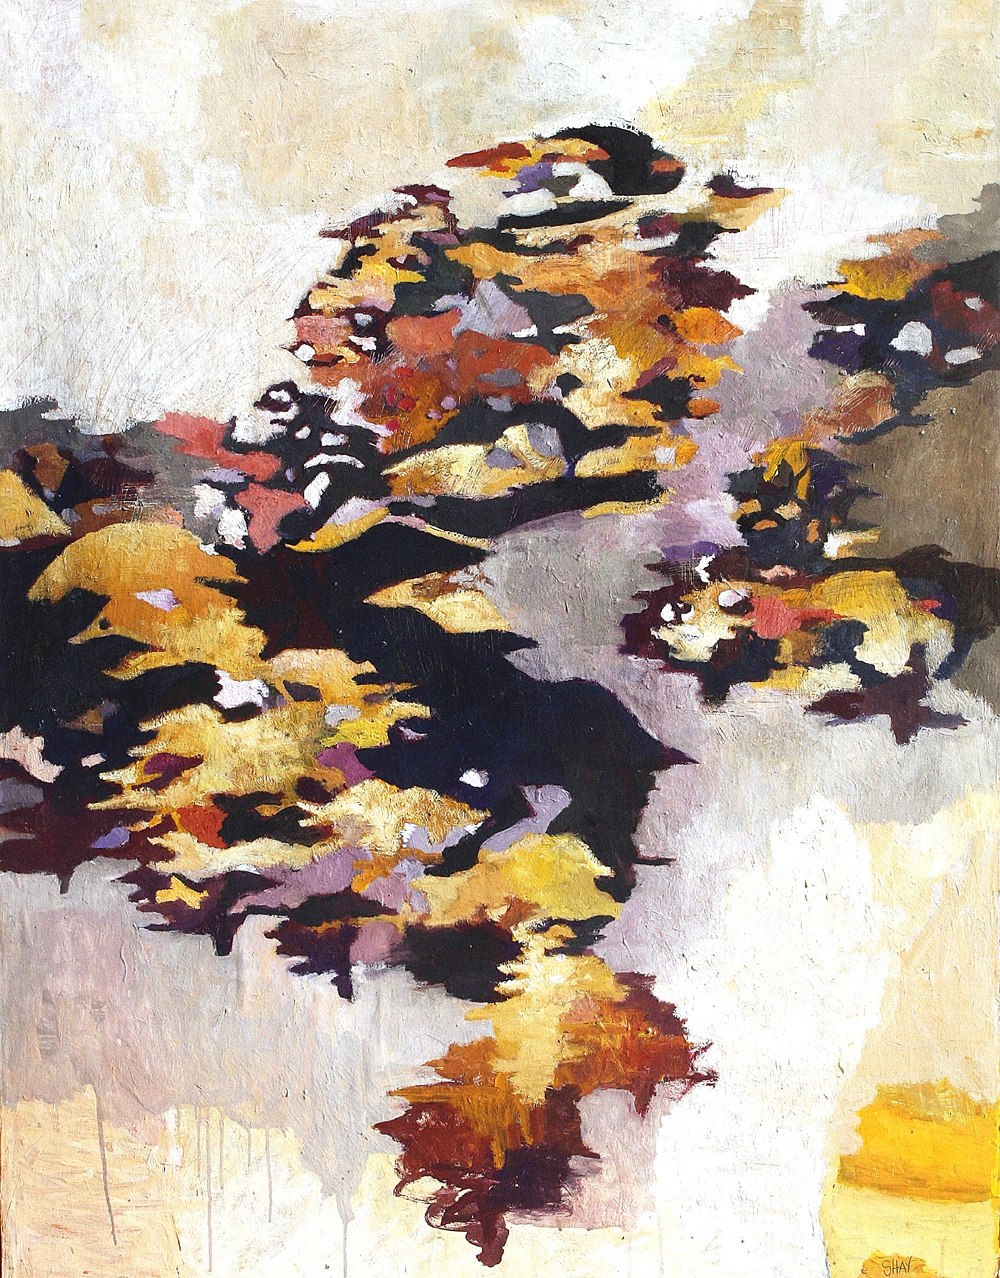 Grove Study 1. Casein and tempera, 65 x 50 in.